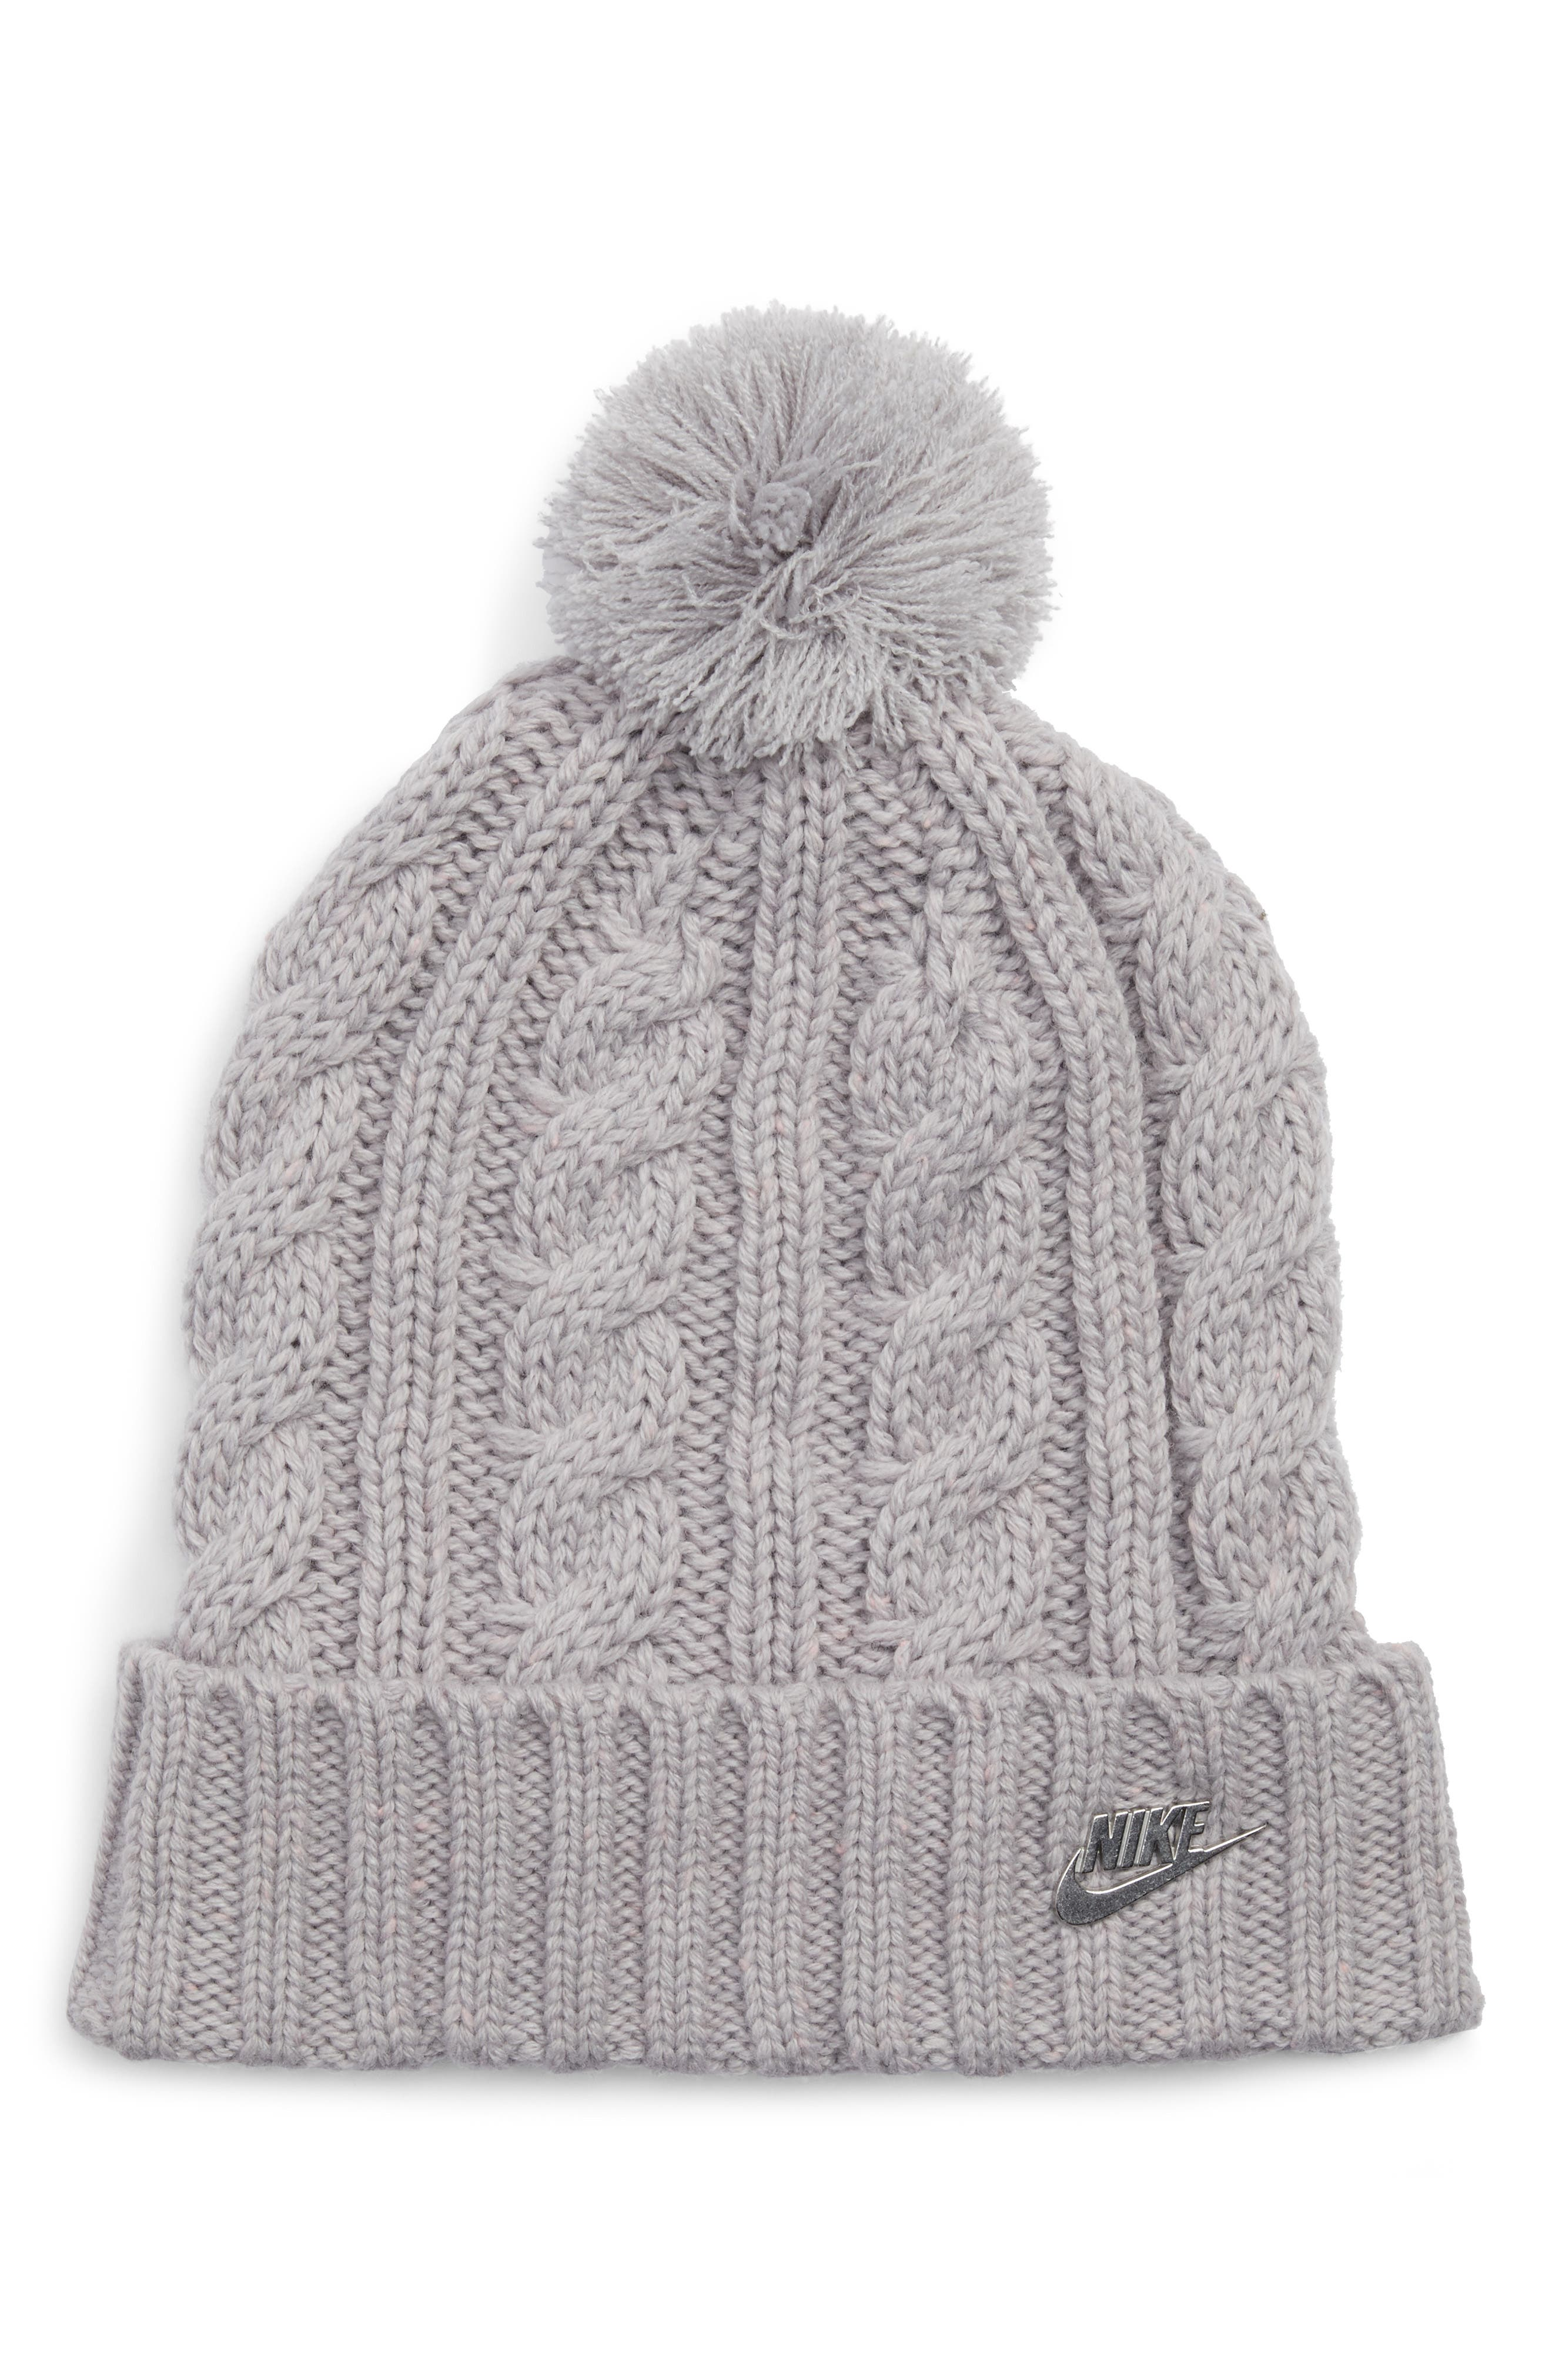 Sportswear Beanie with Removable Pom,                         Main,                         color, 027